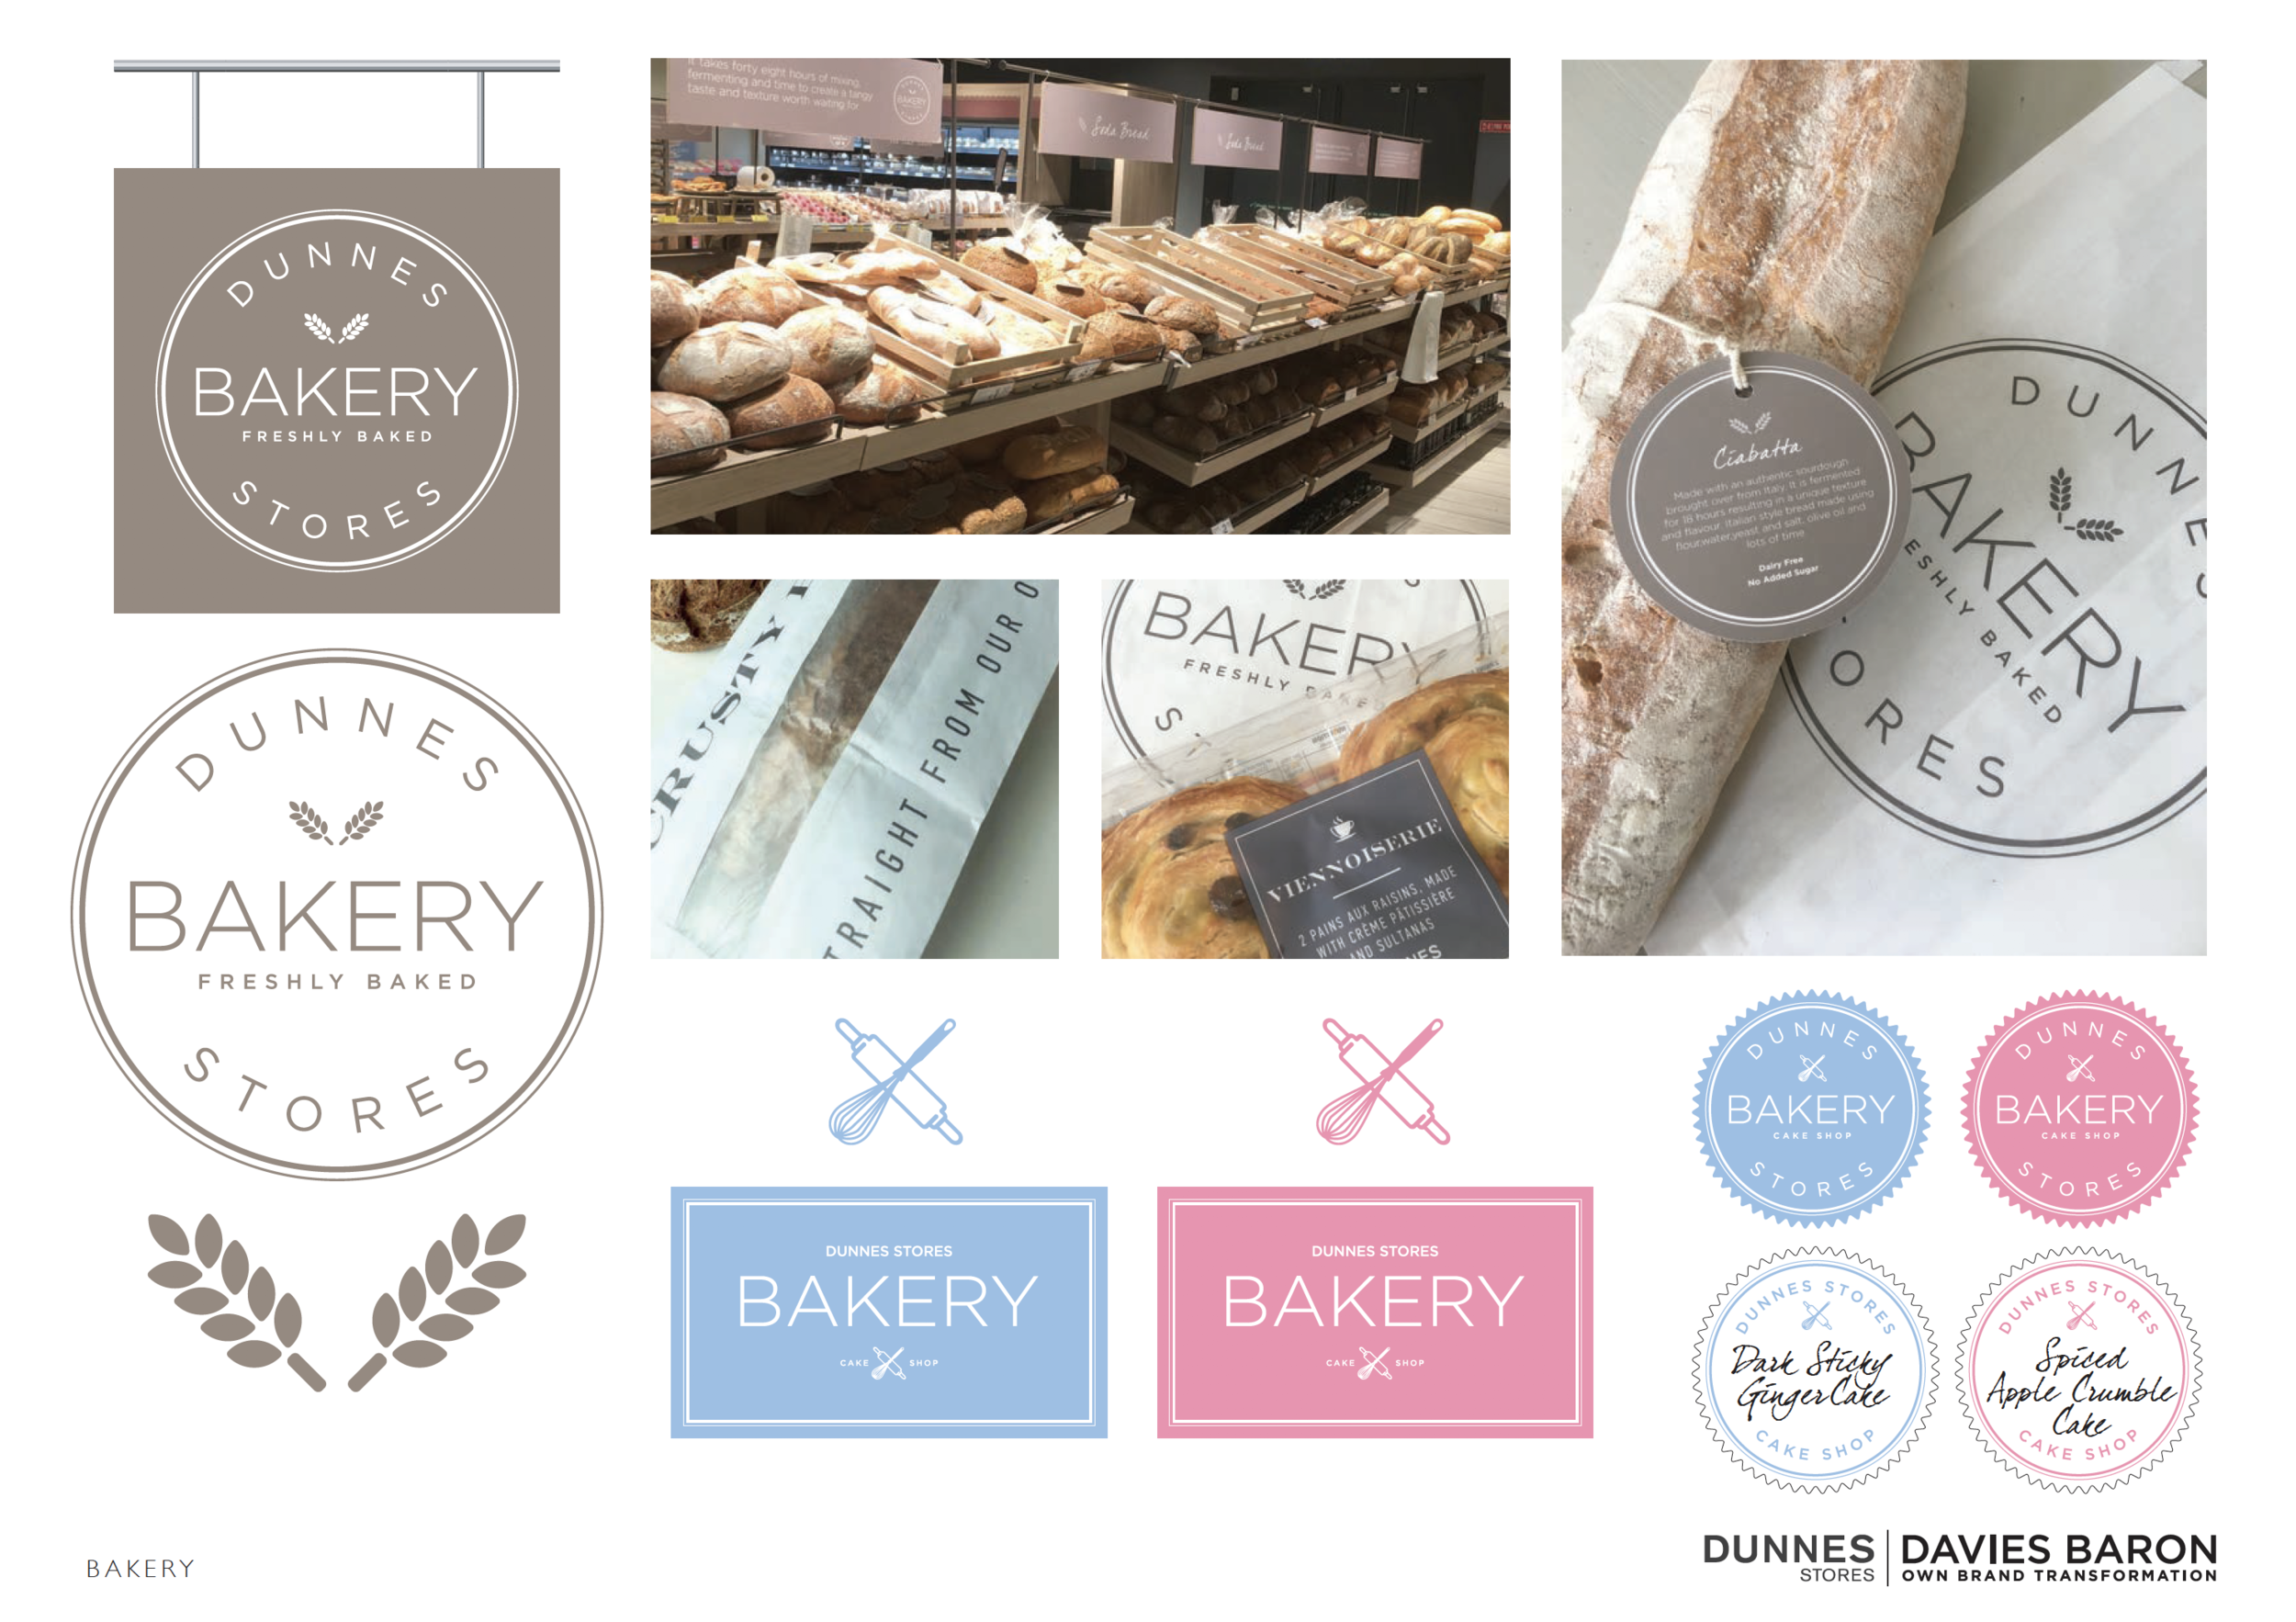 3 Dunnes Stores Bakery Brand Design.png